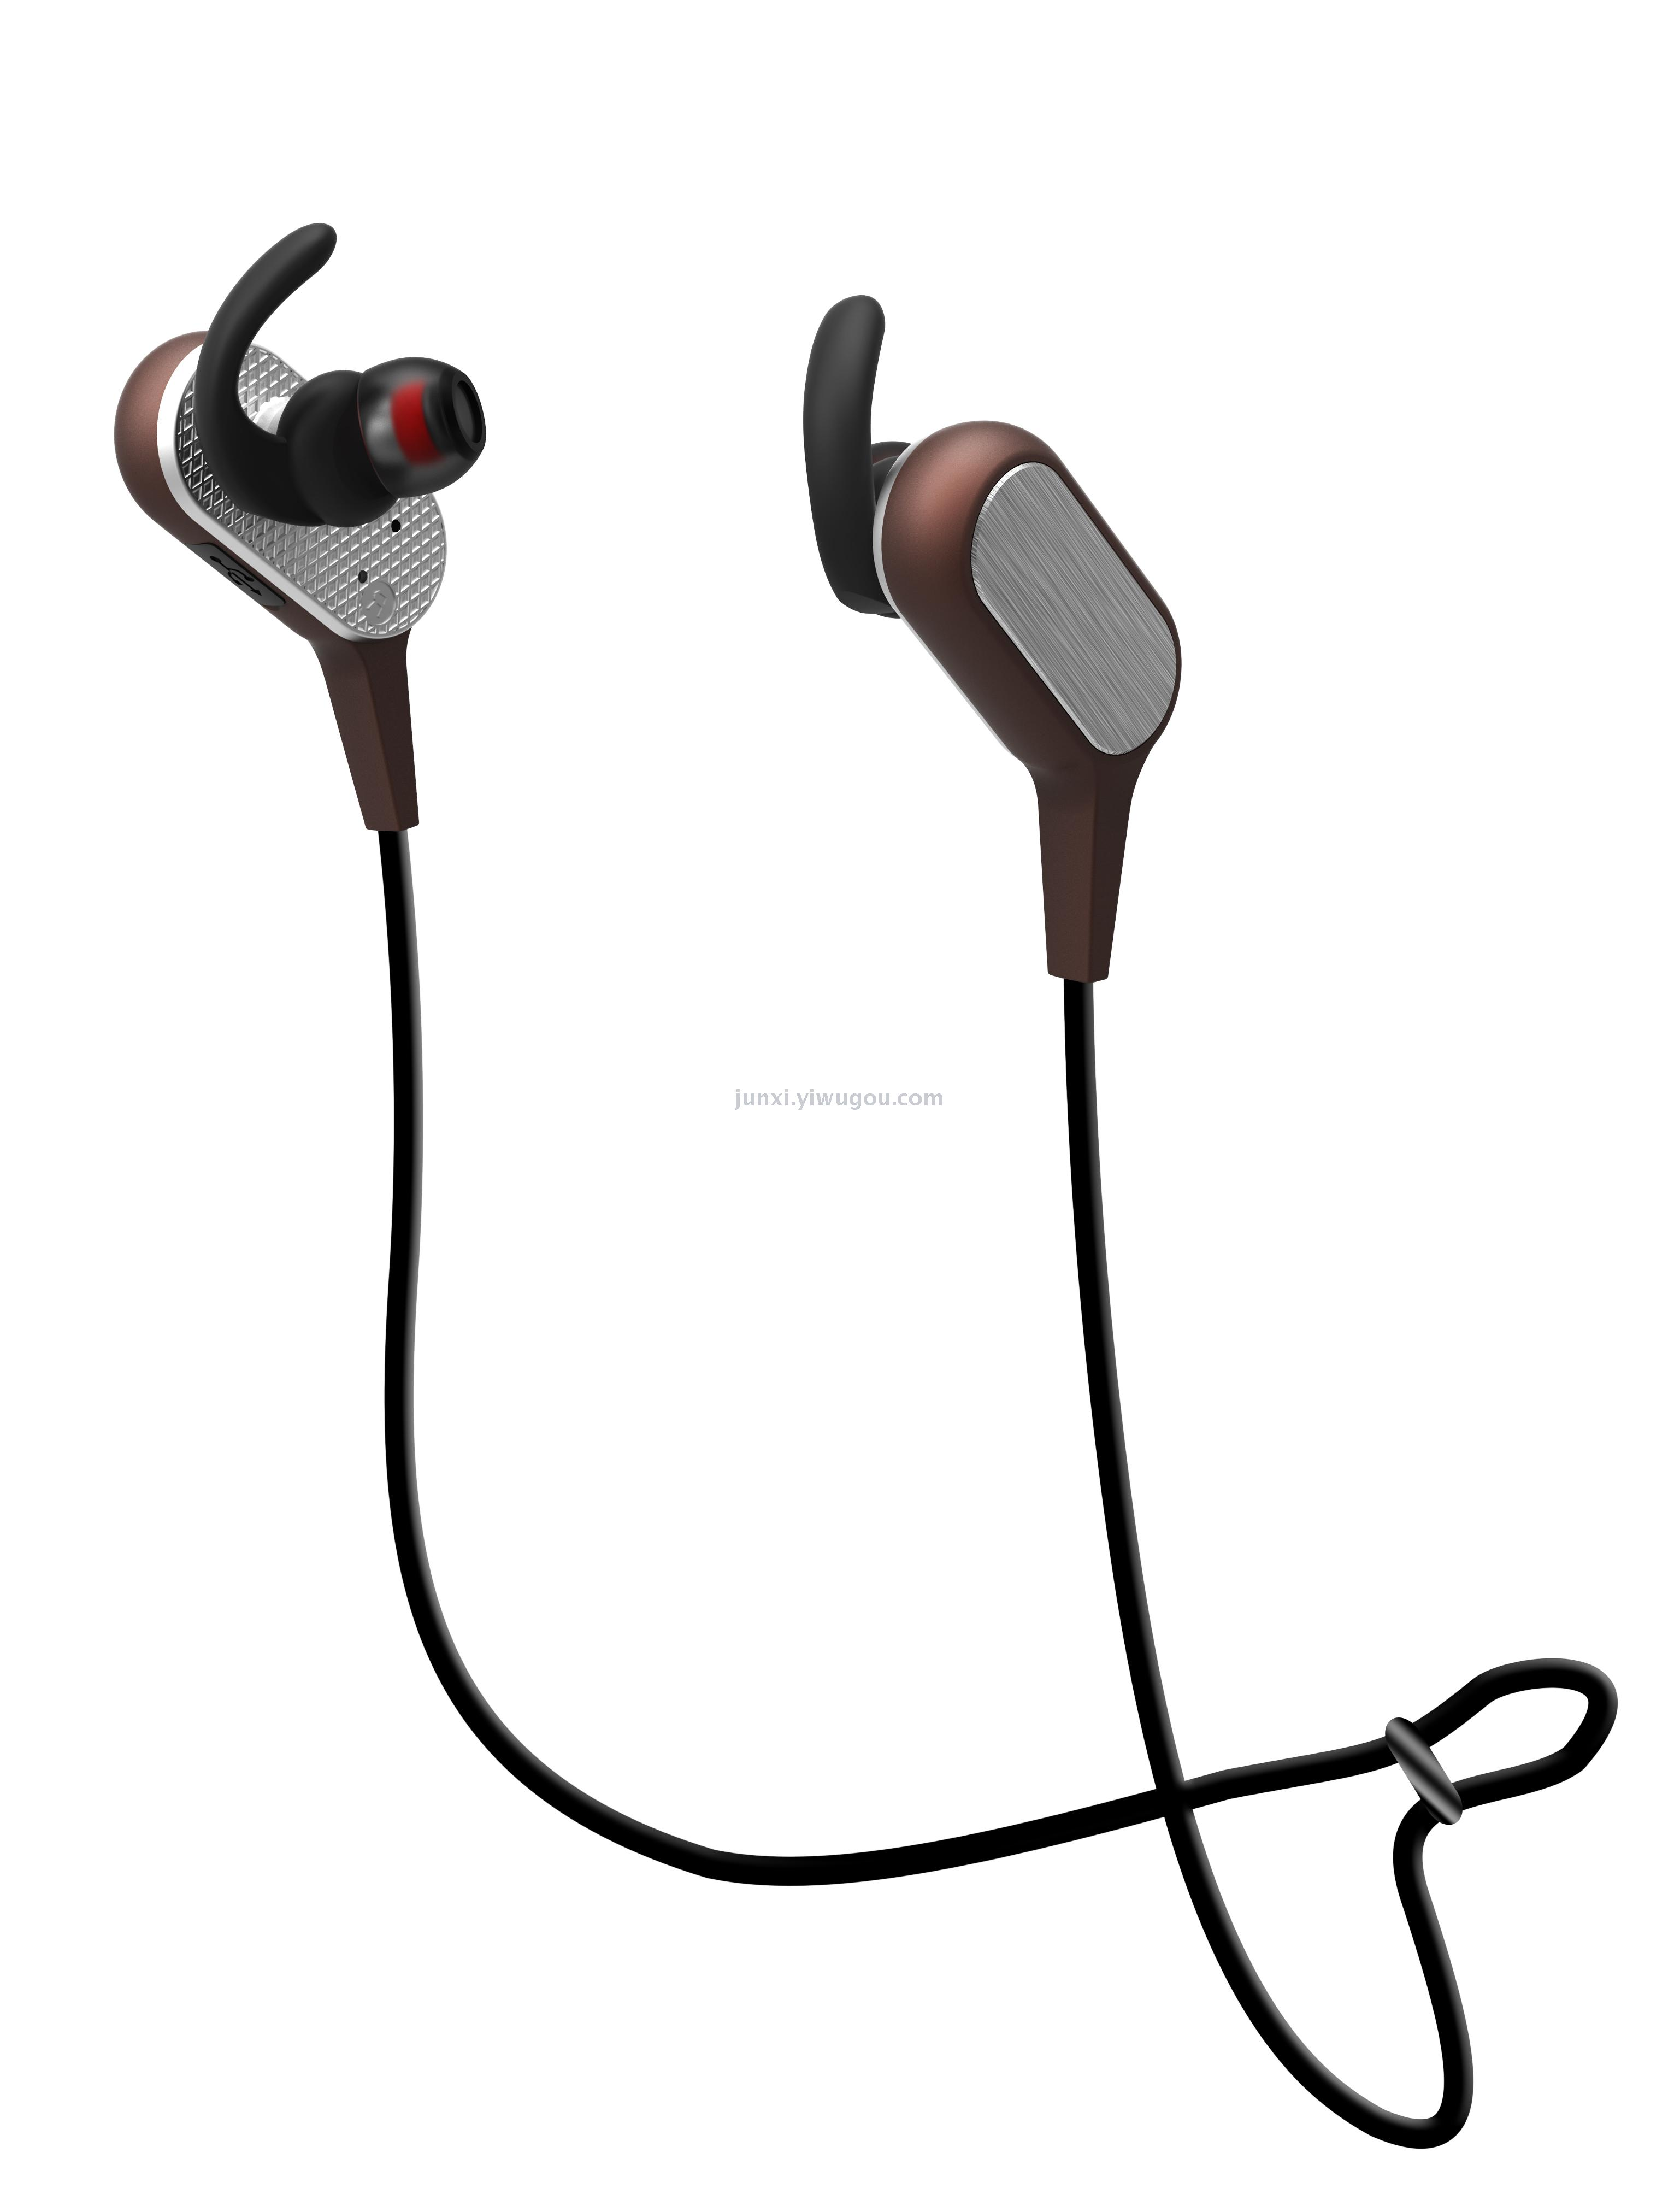 supply bluetooth headsets wireless game sport running headset mobile Aux Cable the plete set of accessories includes usb charging cable neutral color box in chinese and english instruction thread buckle cl transparent silica